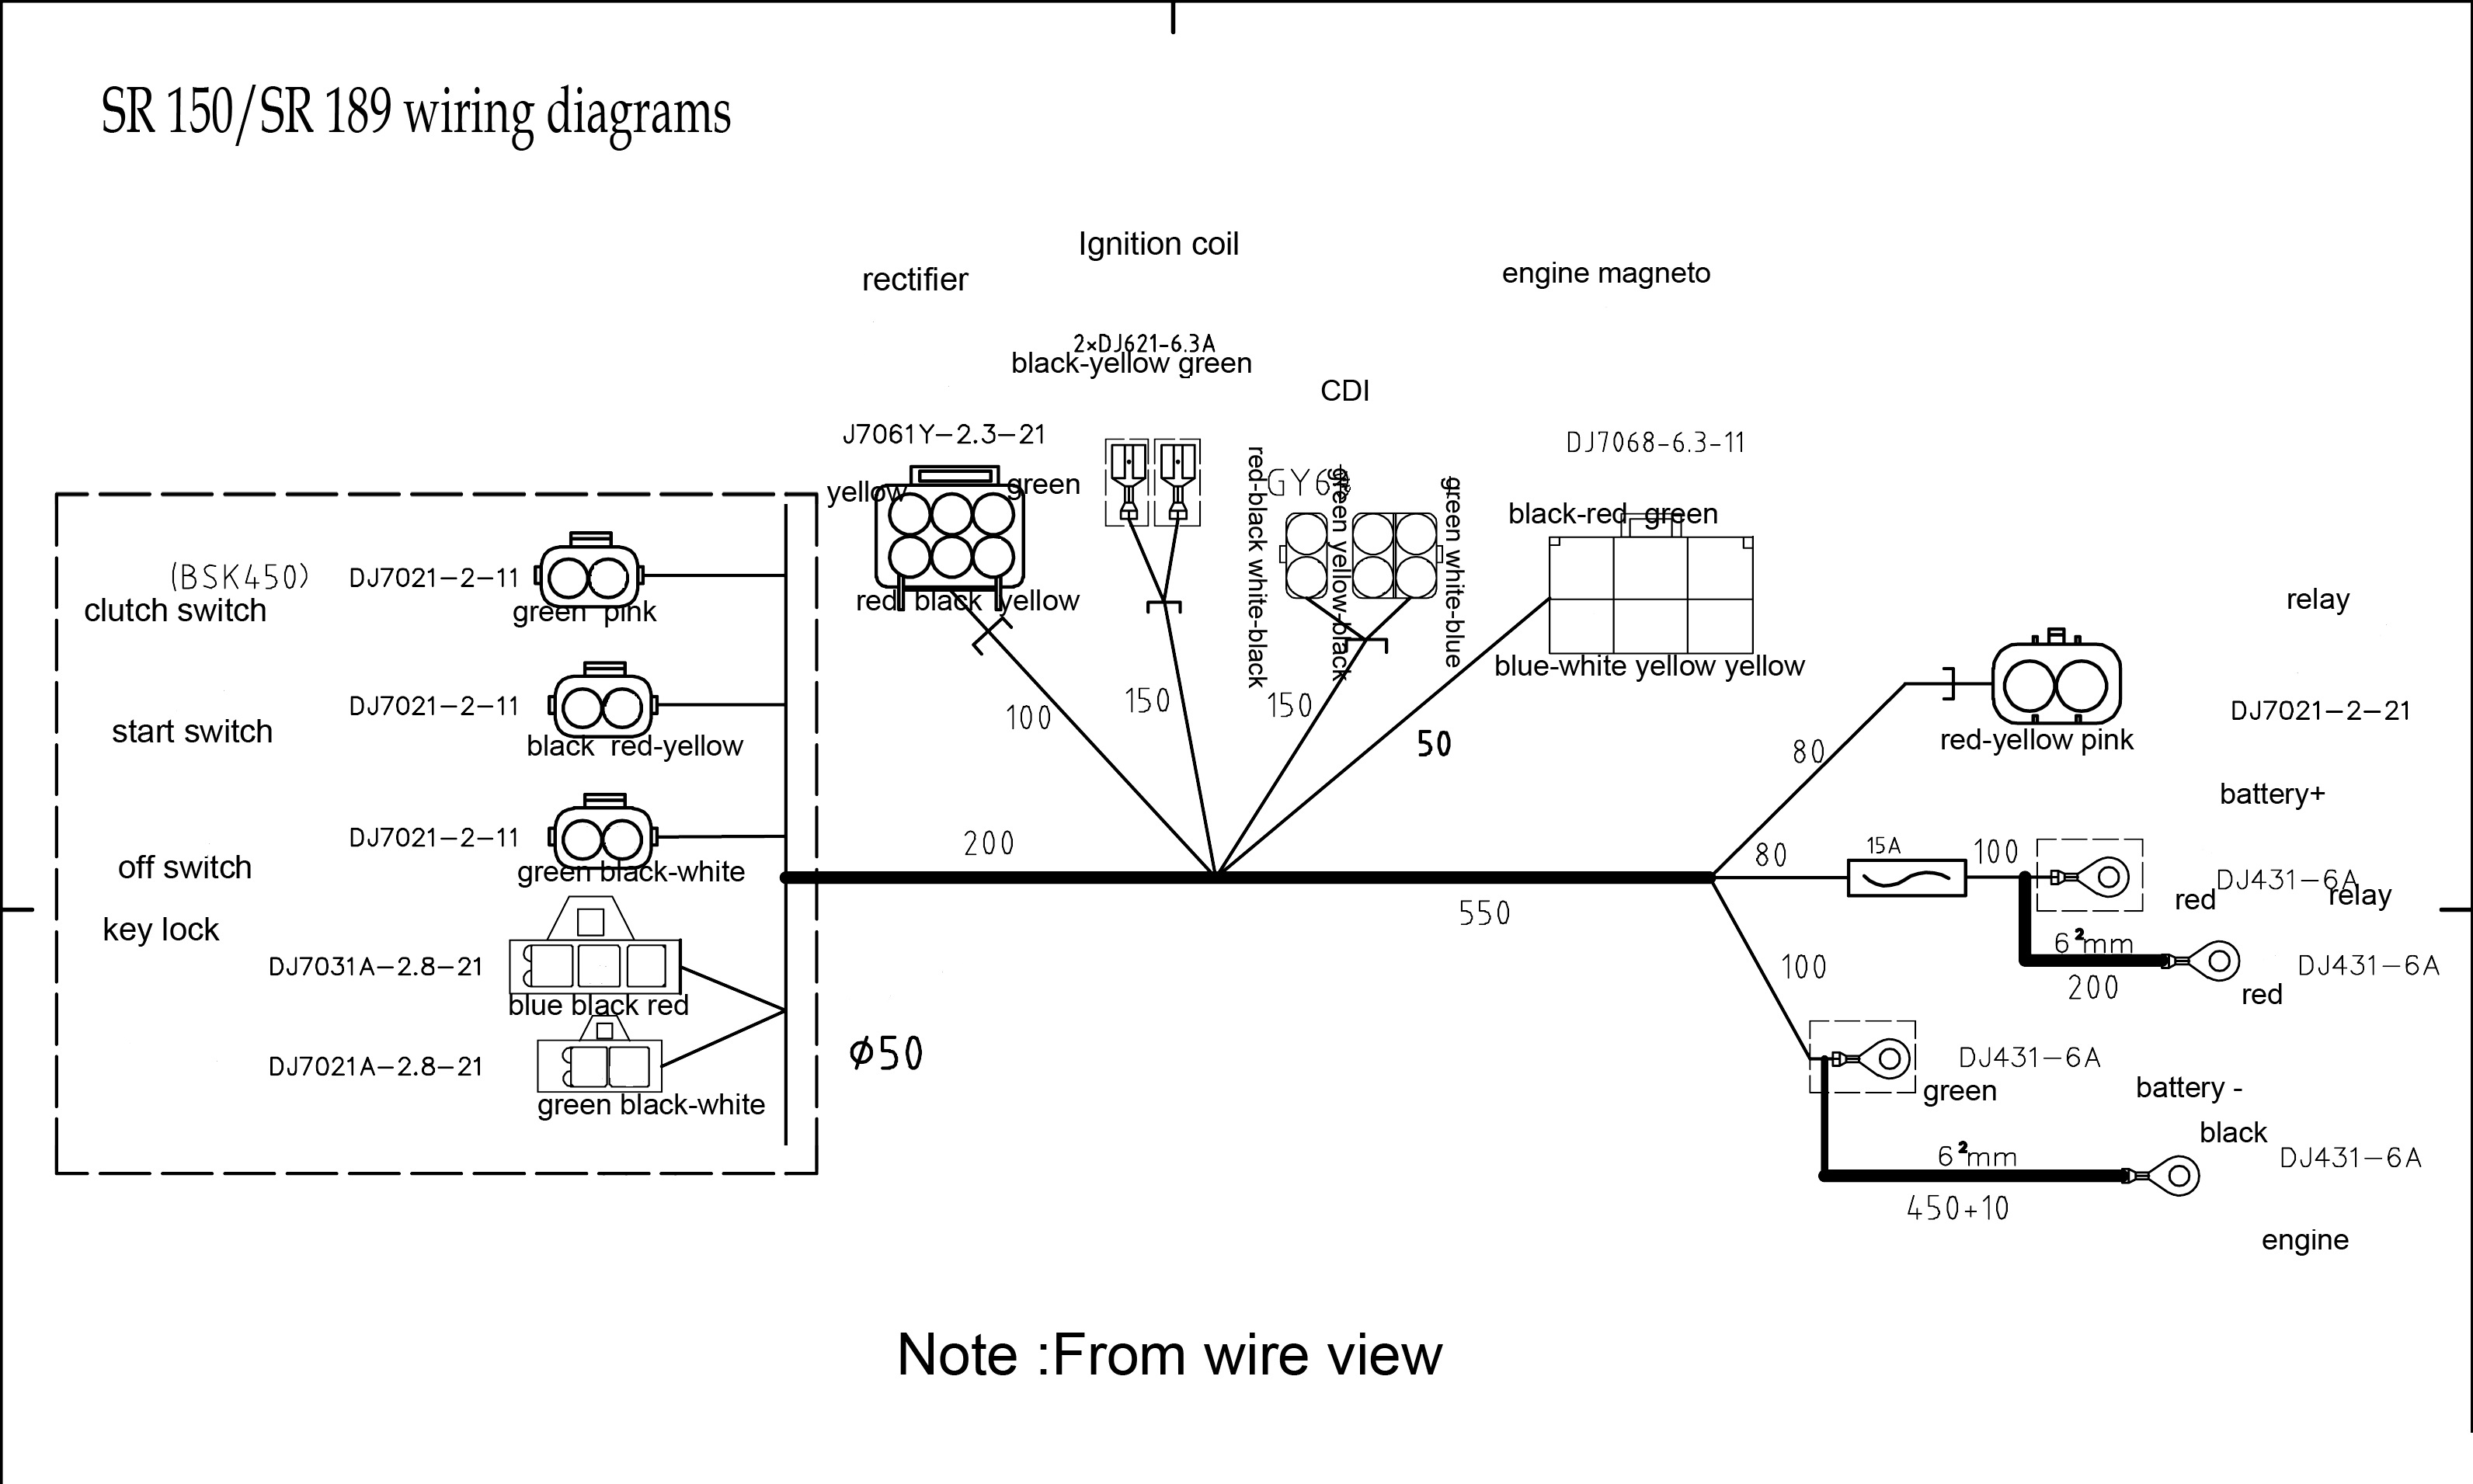 wire diagram, Wiring diagram